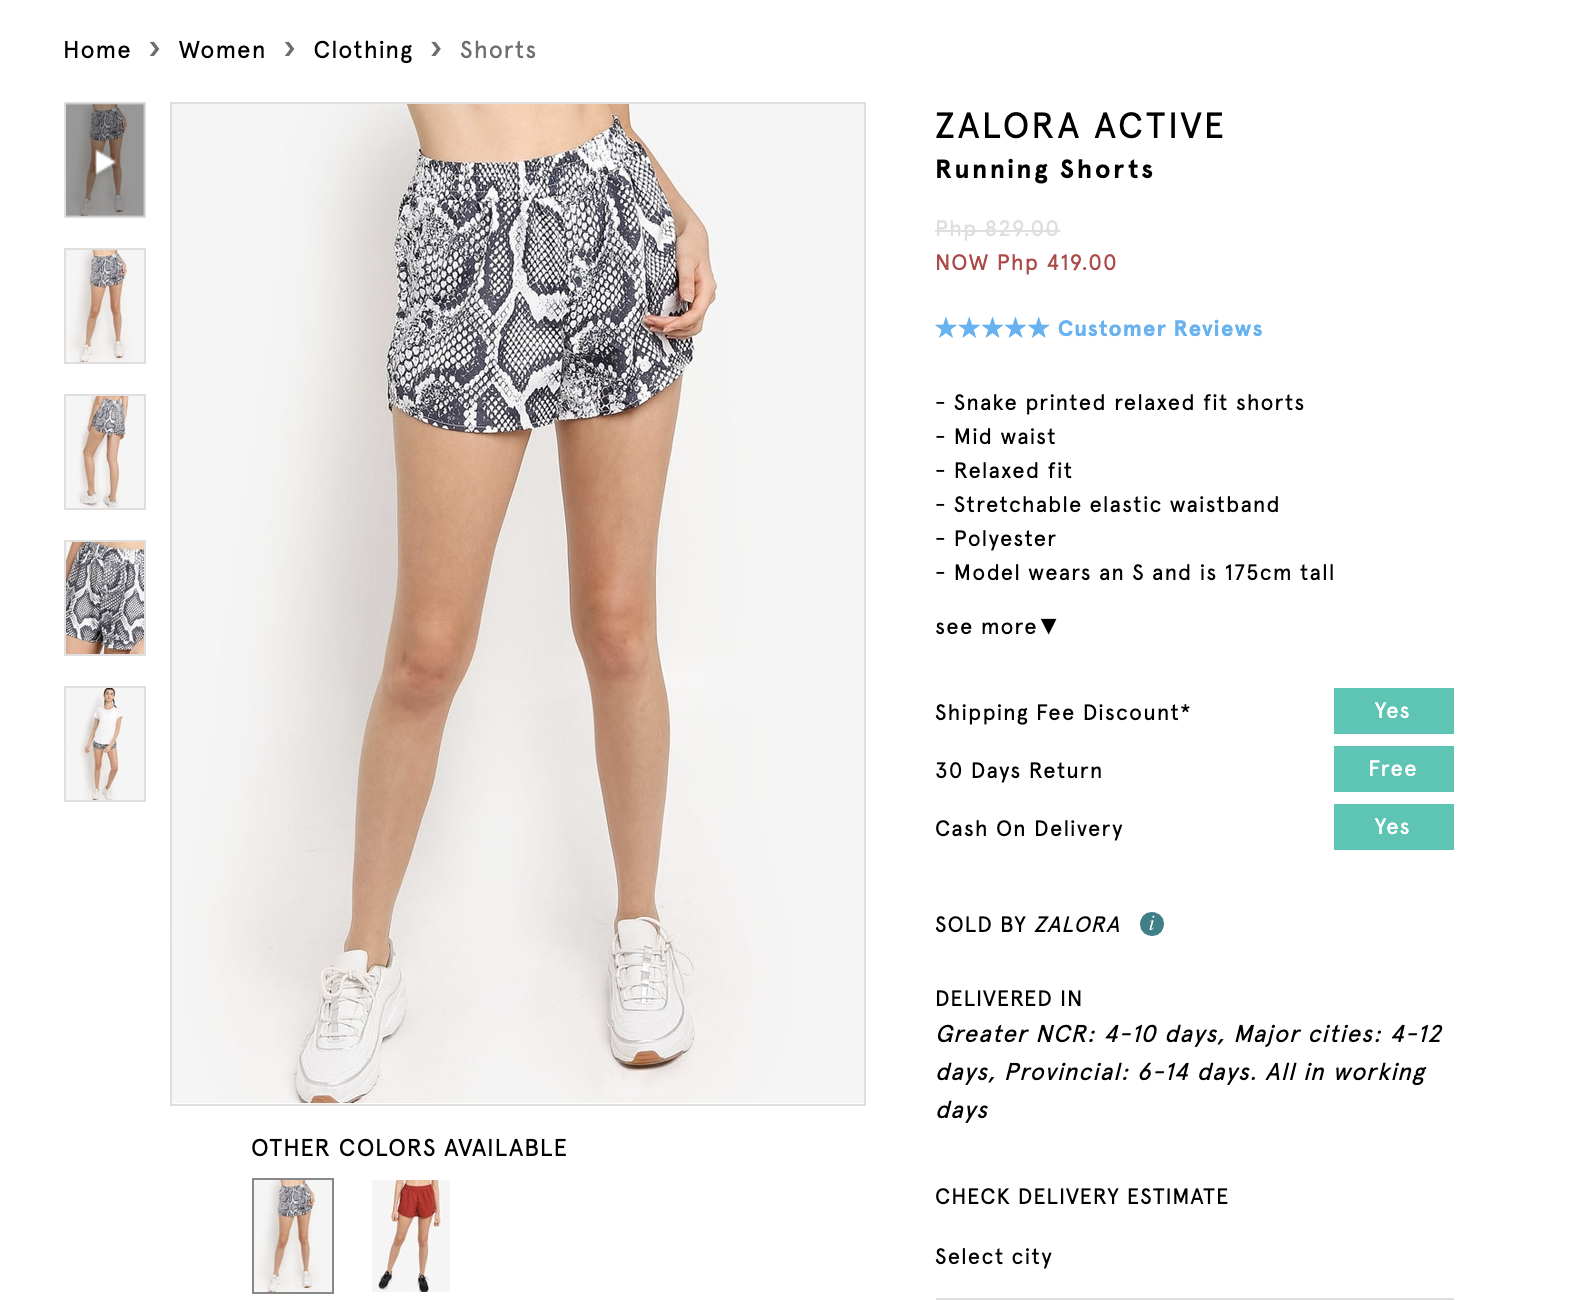 screenshot of Zalora Active Running Shorts